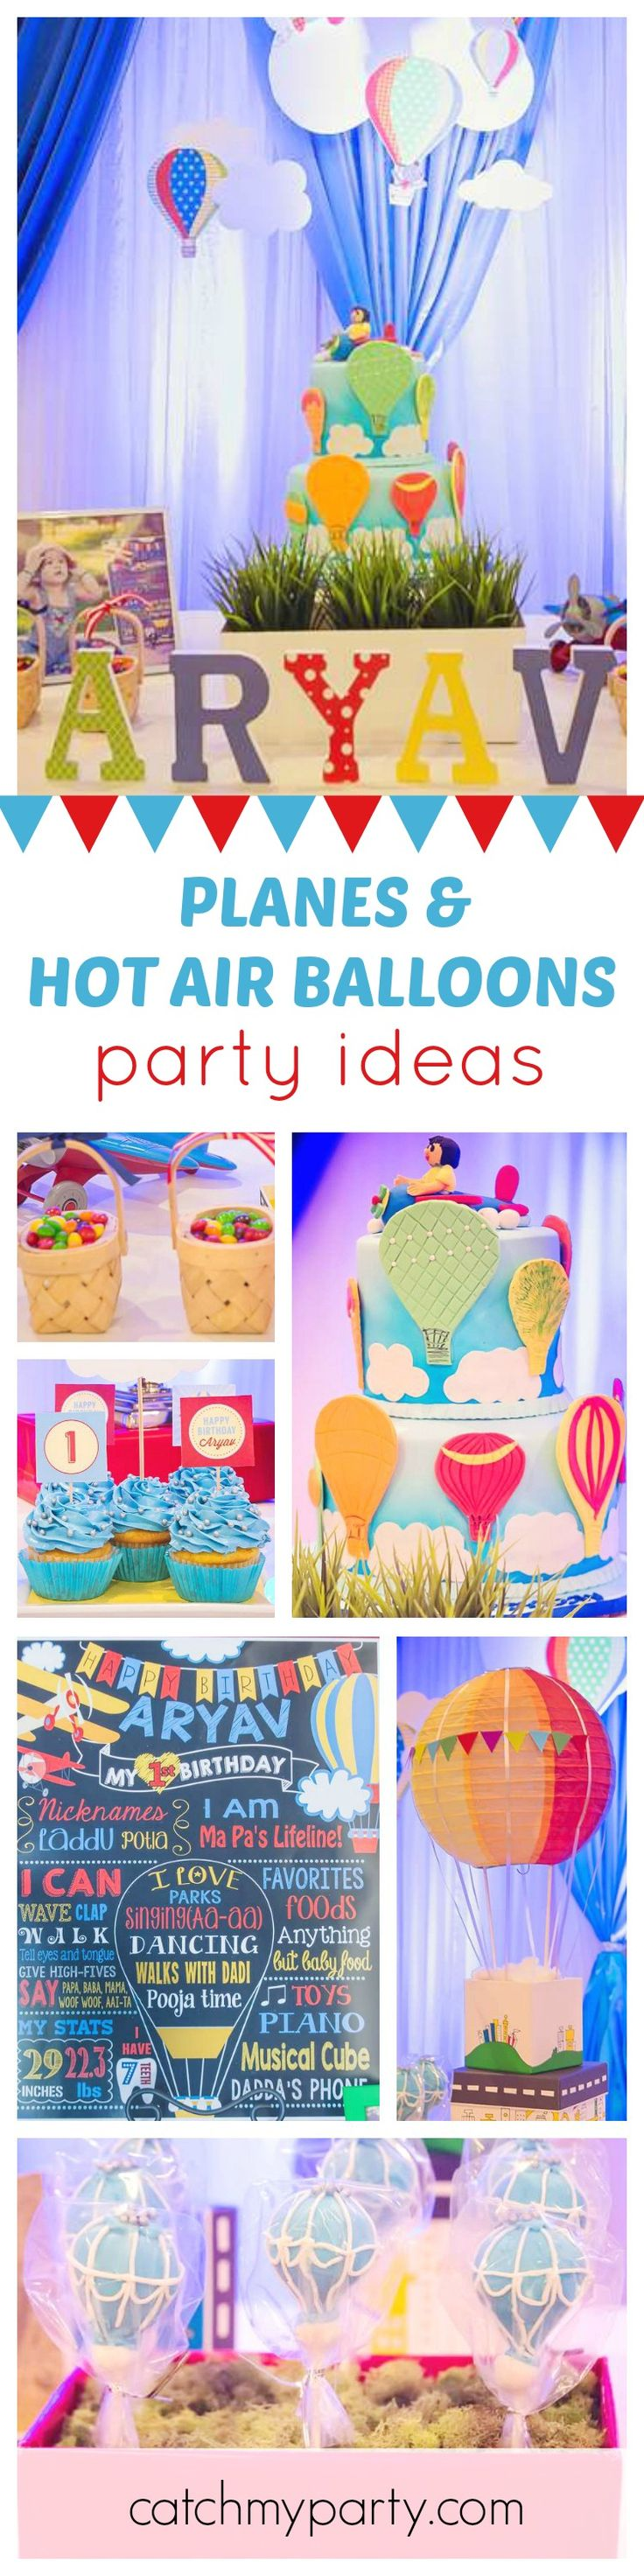 99 best Hot Air Balloon Party Ideas images on Pinterest Balloon